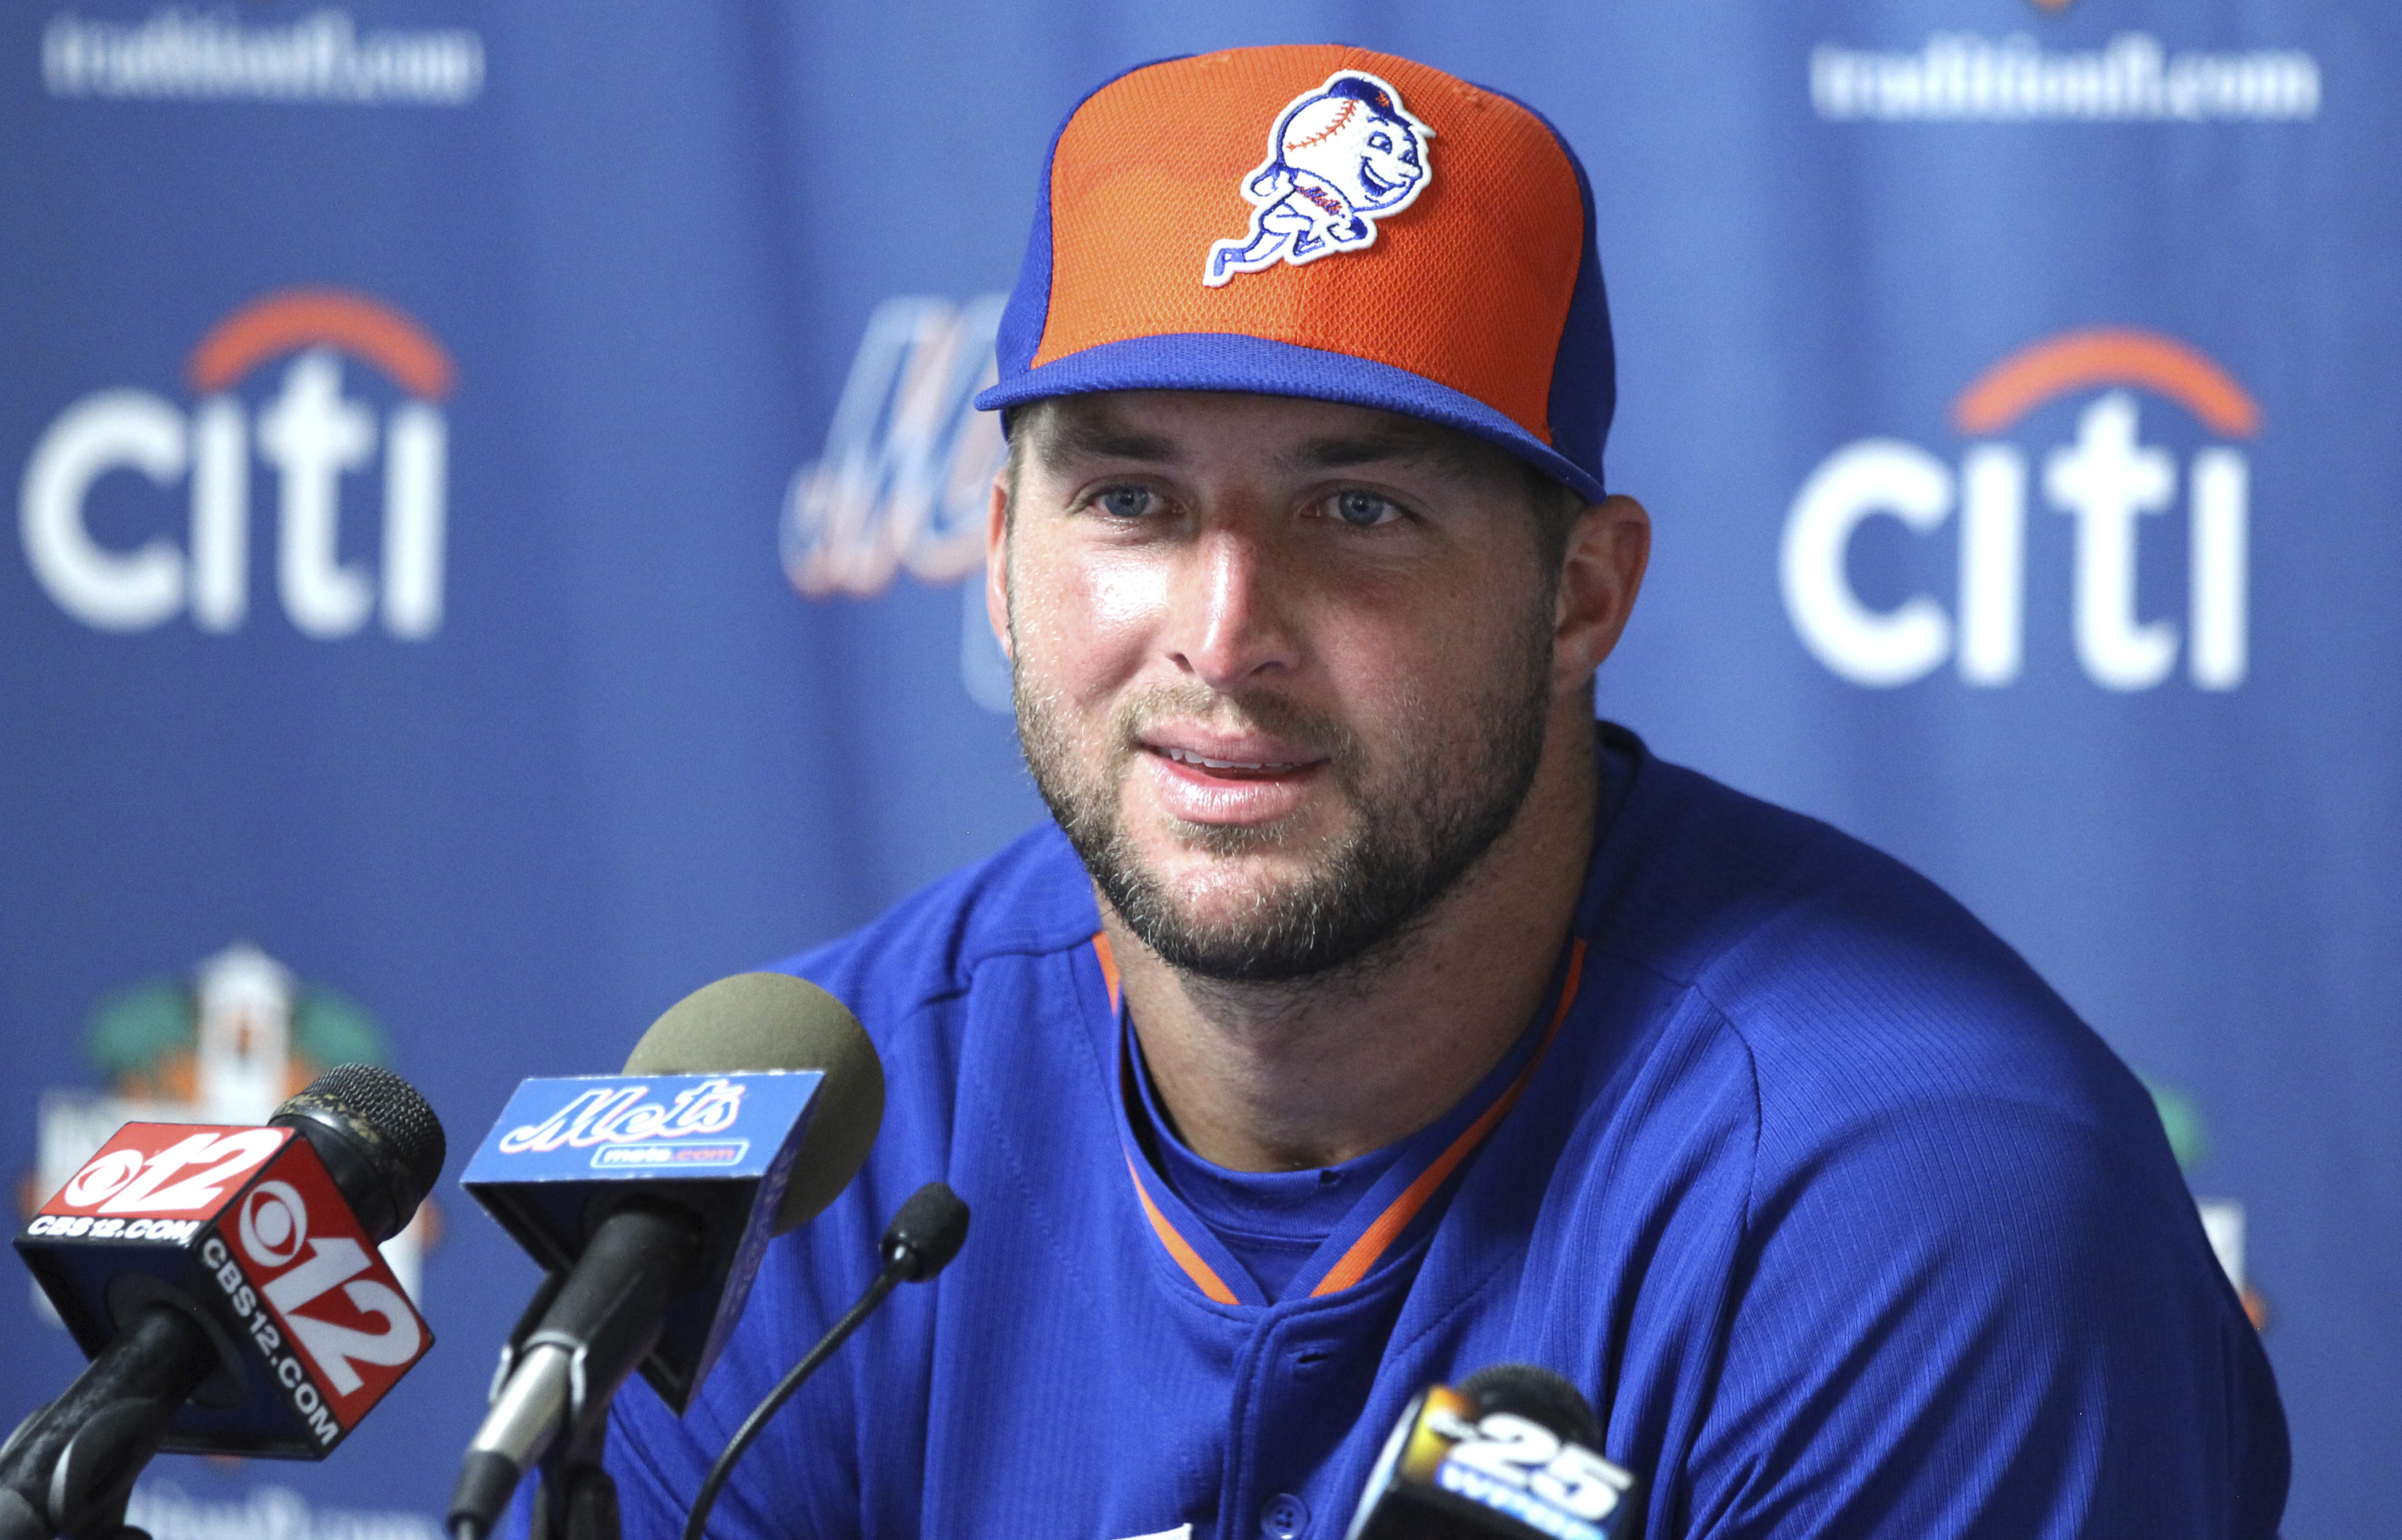 FILE - This Sept. 28, 2016 file photo shows Tim Tebow talking during a news conference after his first instructional league baseball game for the New York Mets against the St. Louis Cardinals instructional club in Port St. Lucie, Fla. Tebow will test his